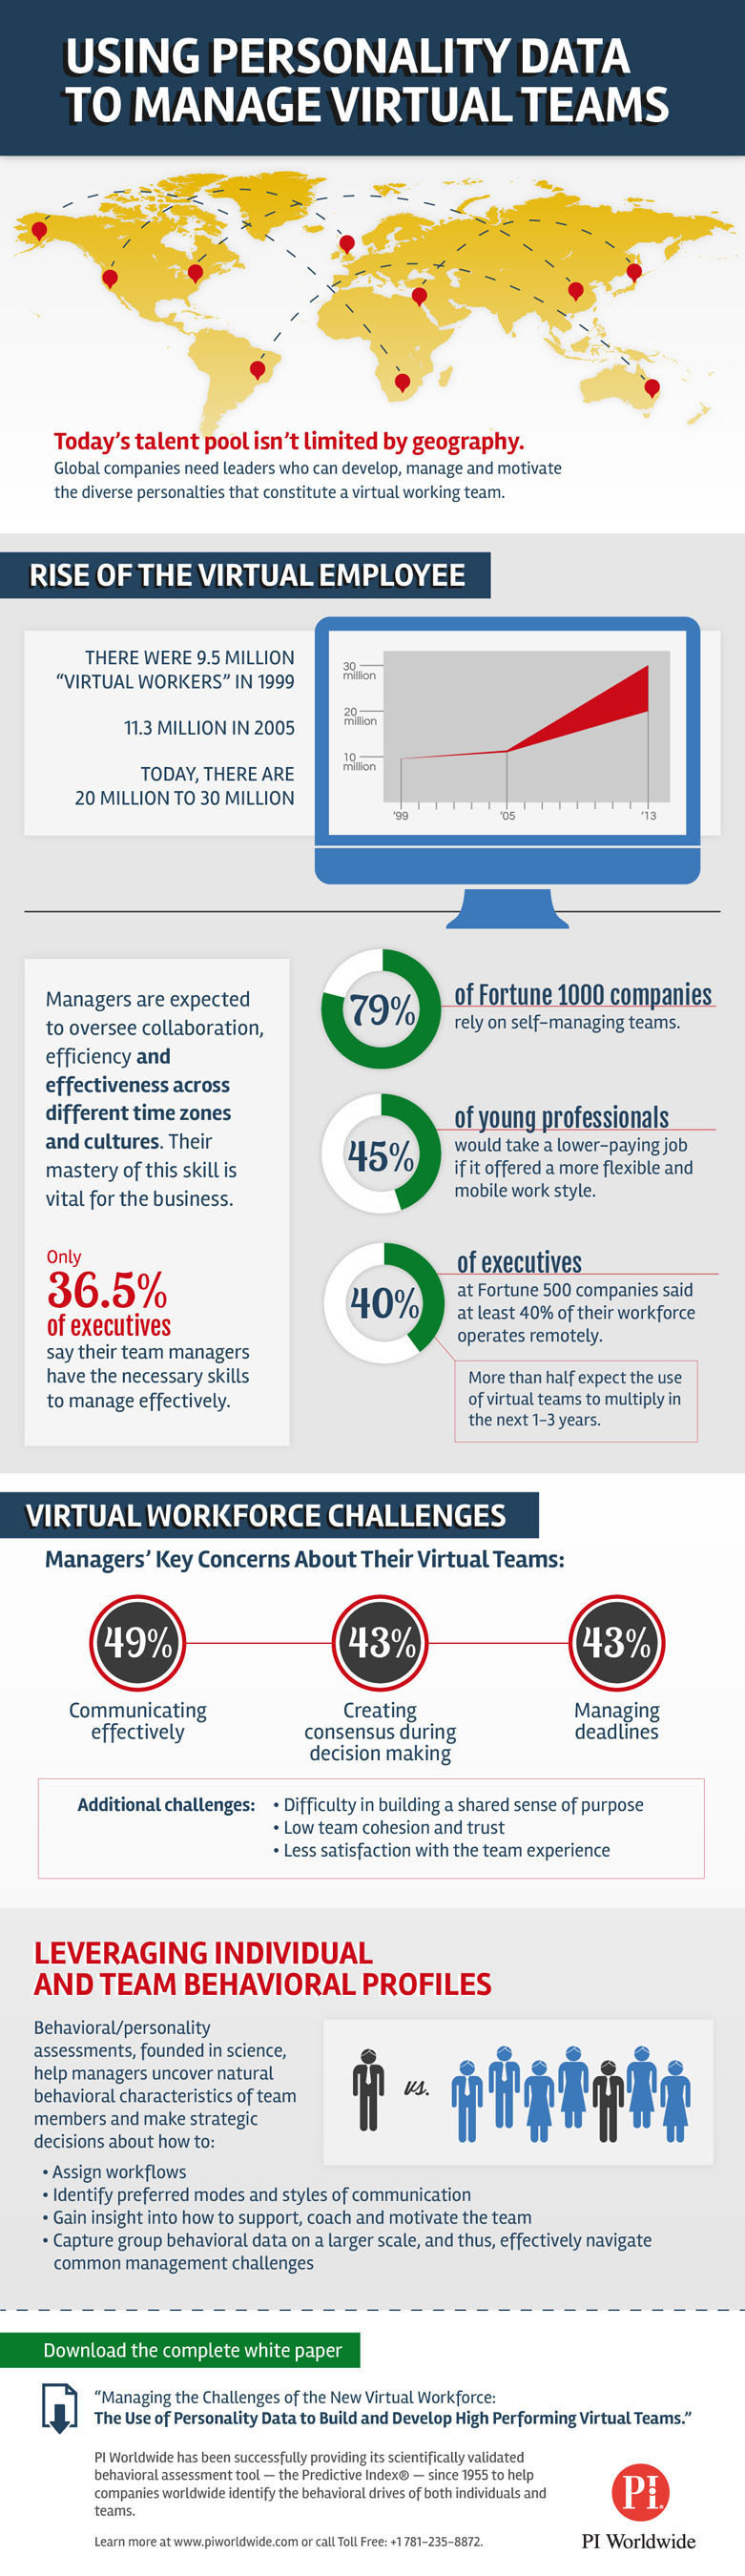 Whitepaper: Effective Team Management A Challenge in the Virtual Workforce